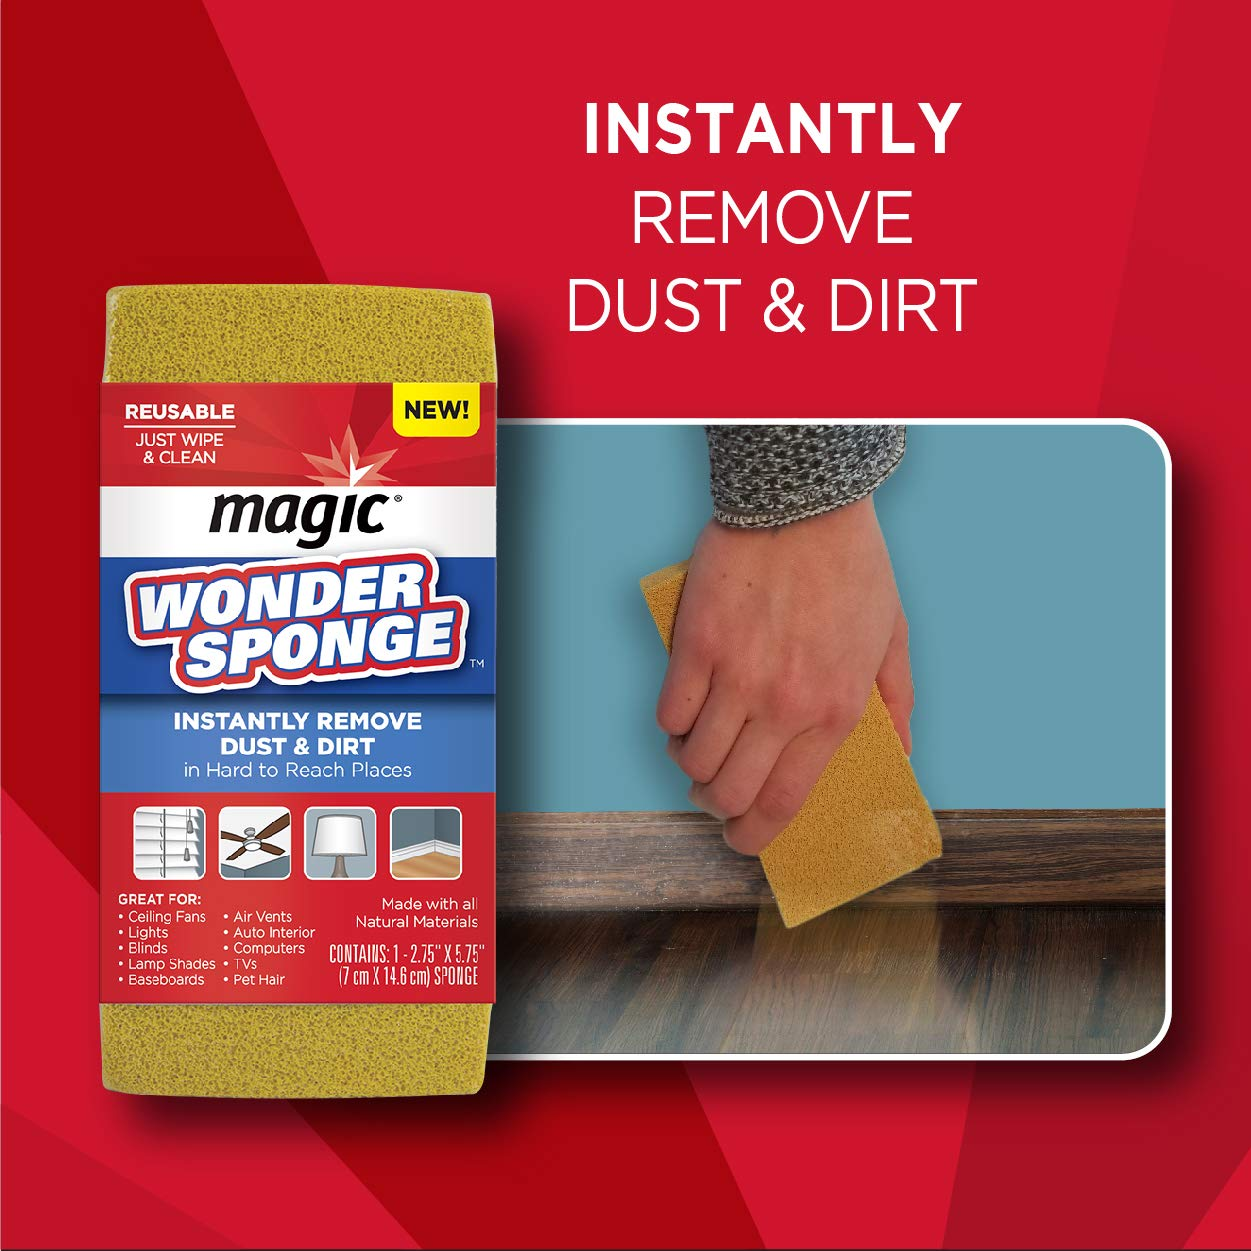 Magic Dust Wonder Sponge for Blinds Fans Lampshades Baseboards Pet Hair TVs Computer Electronics Auto Remover